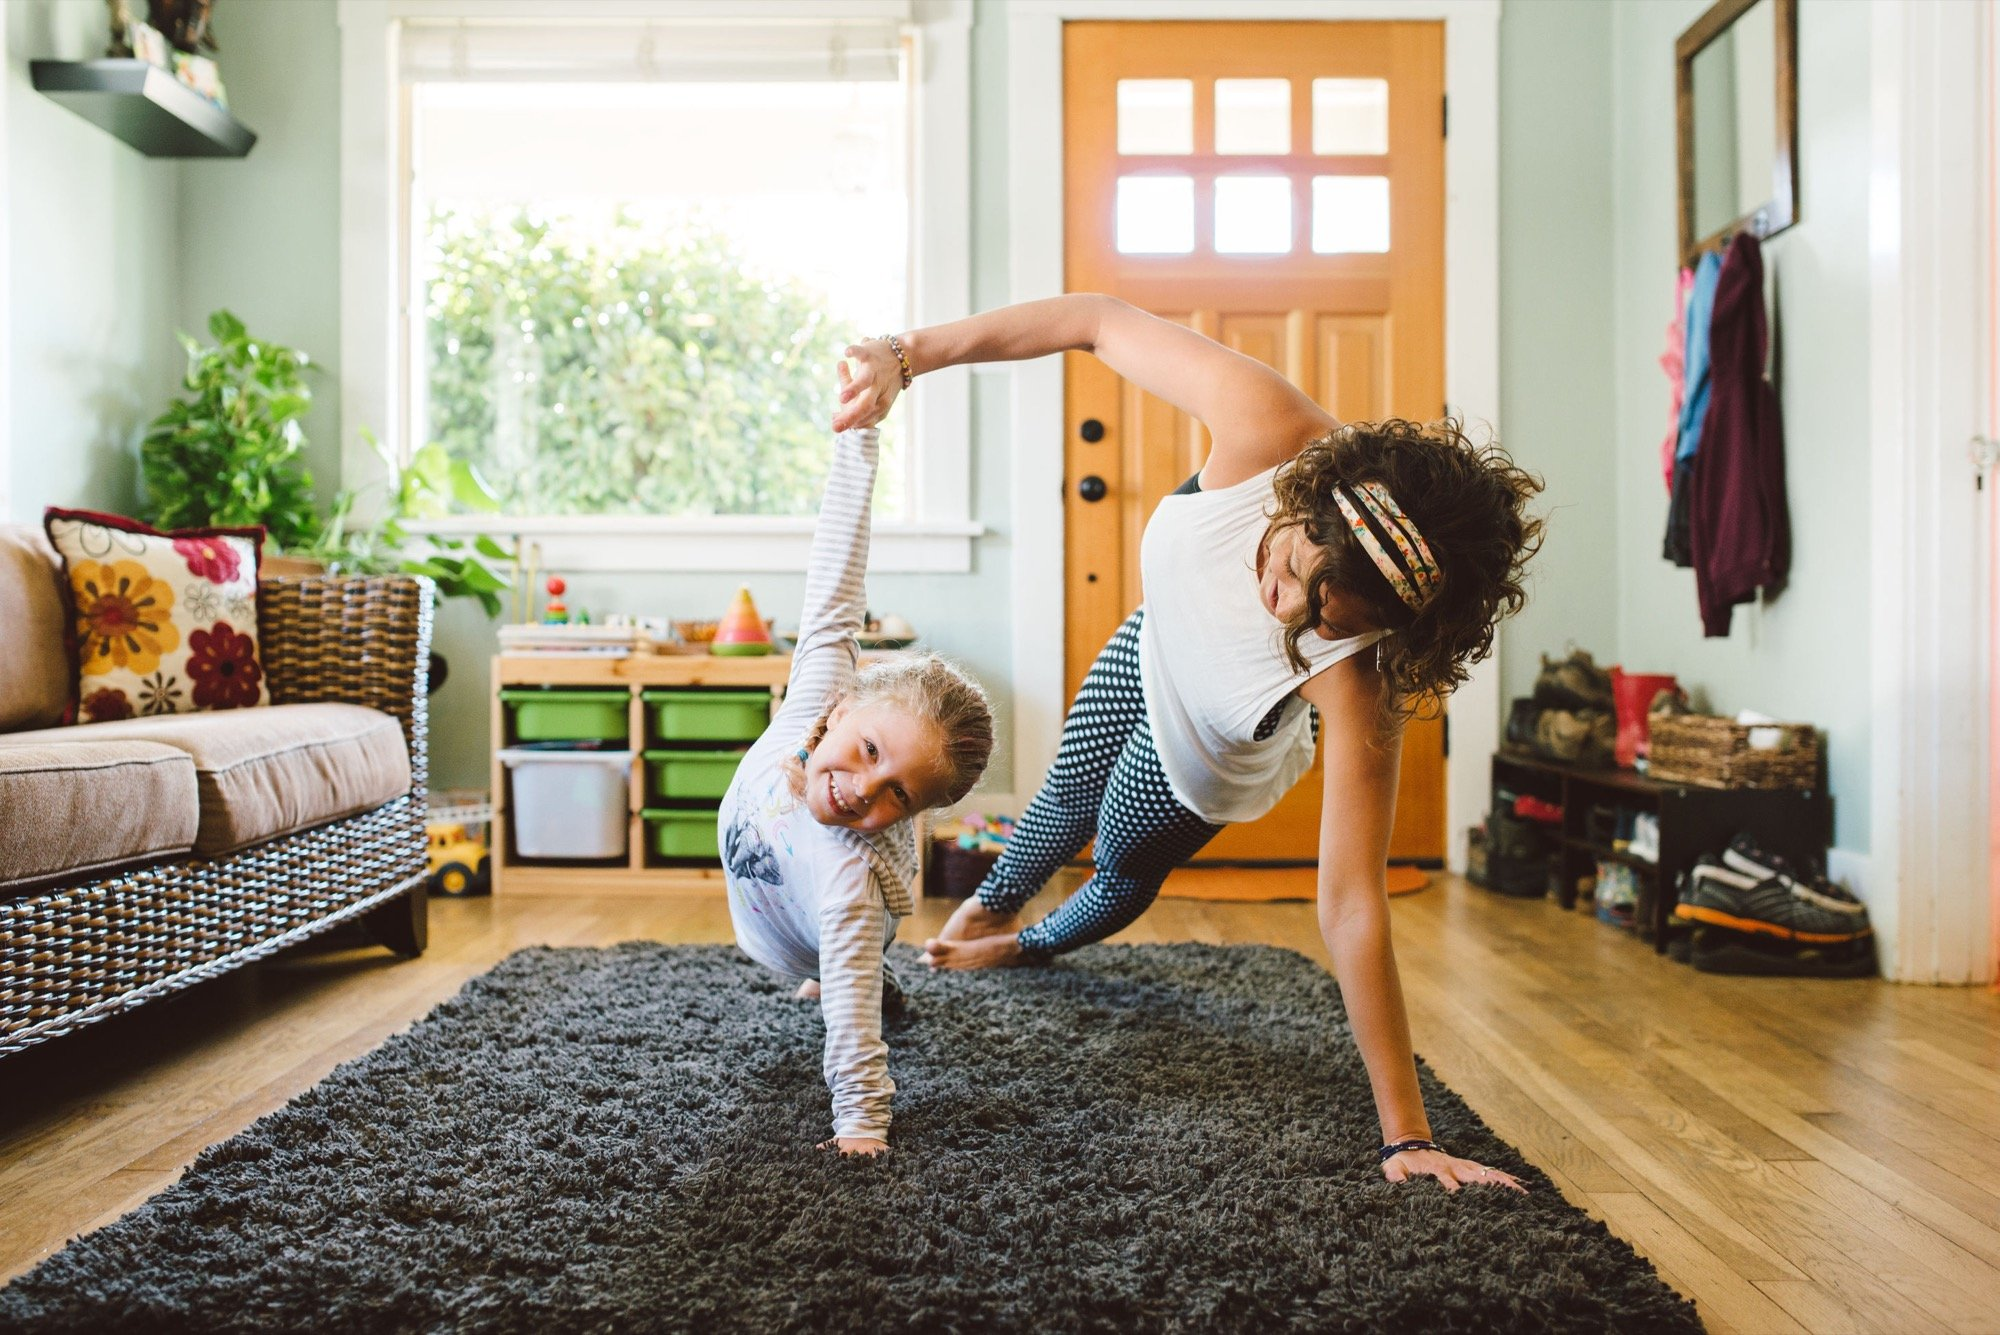 Young Girl Does Yoga In Living Room With Her Mom.